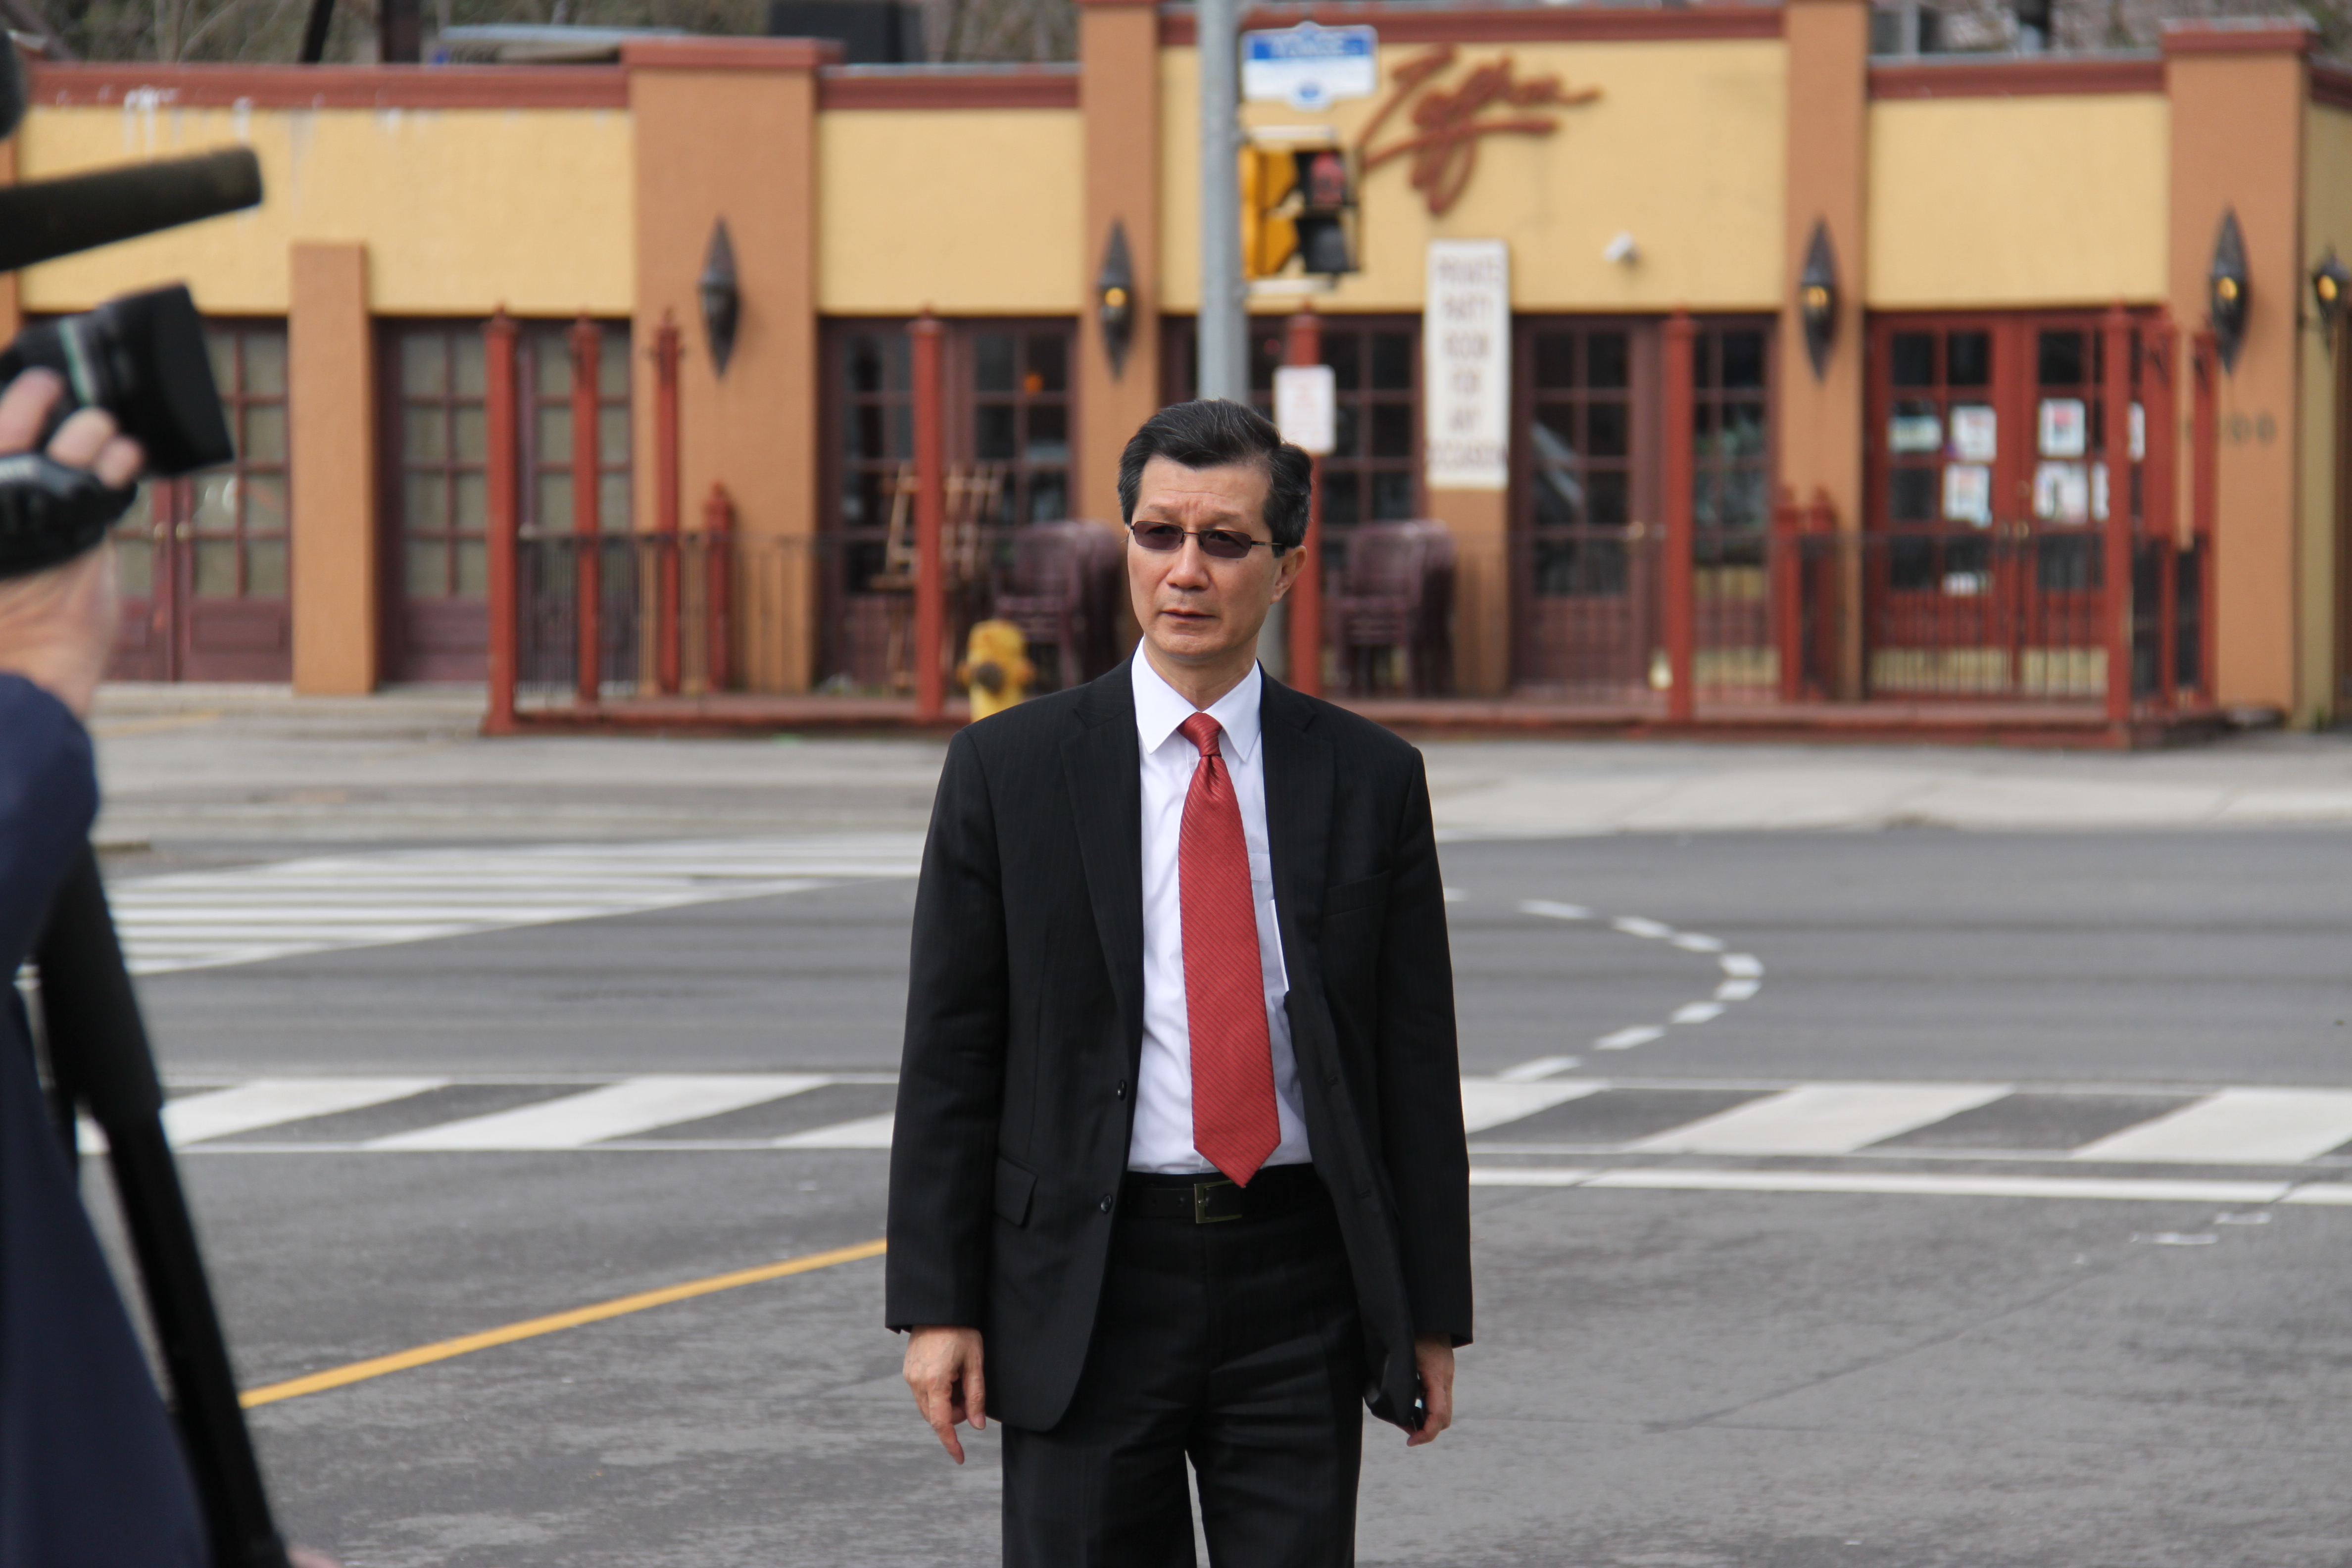 Ontario Minister of Citizenship, Immigration, and International Trade Michael Chan sparked concerns at CSIS that he was under the influence of the Chinese regime, reports the Globe and Mail. (Becky Zhou/Epoch Times)